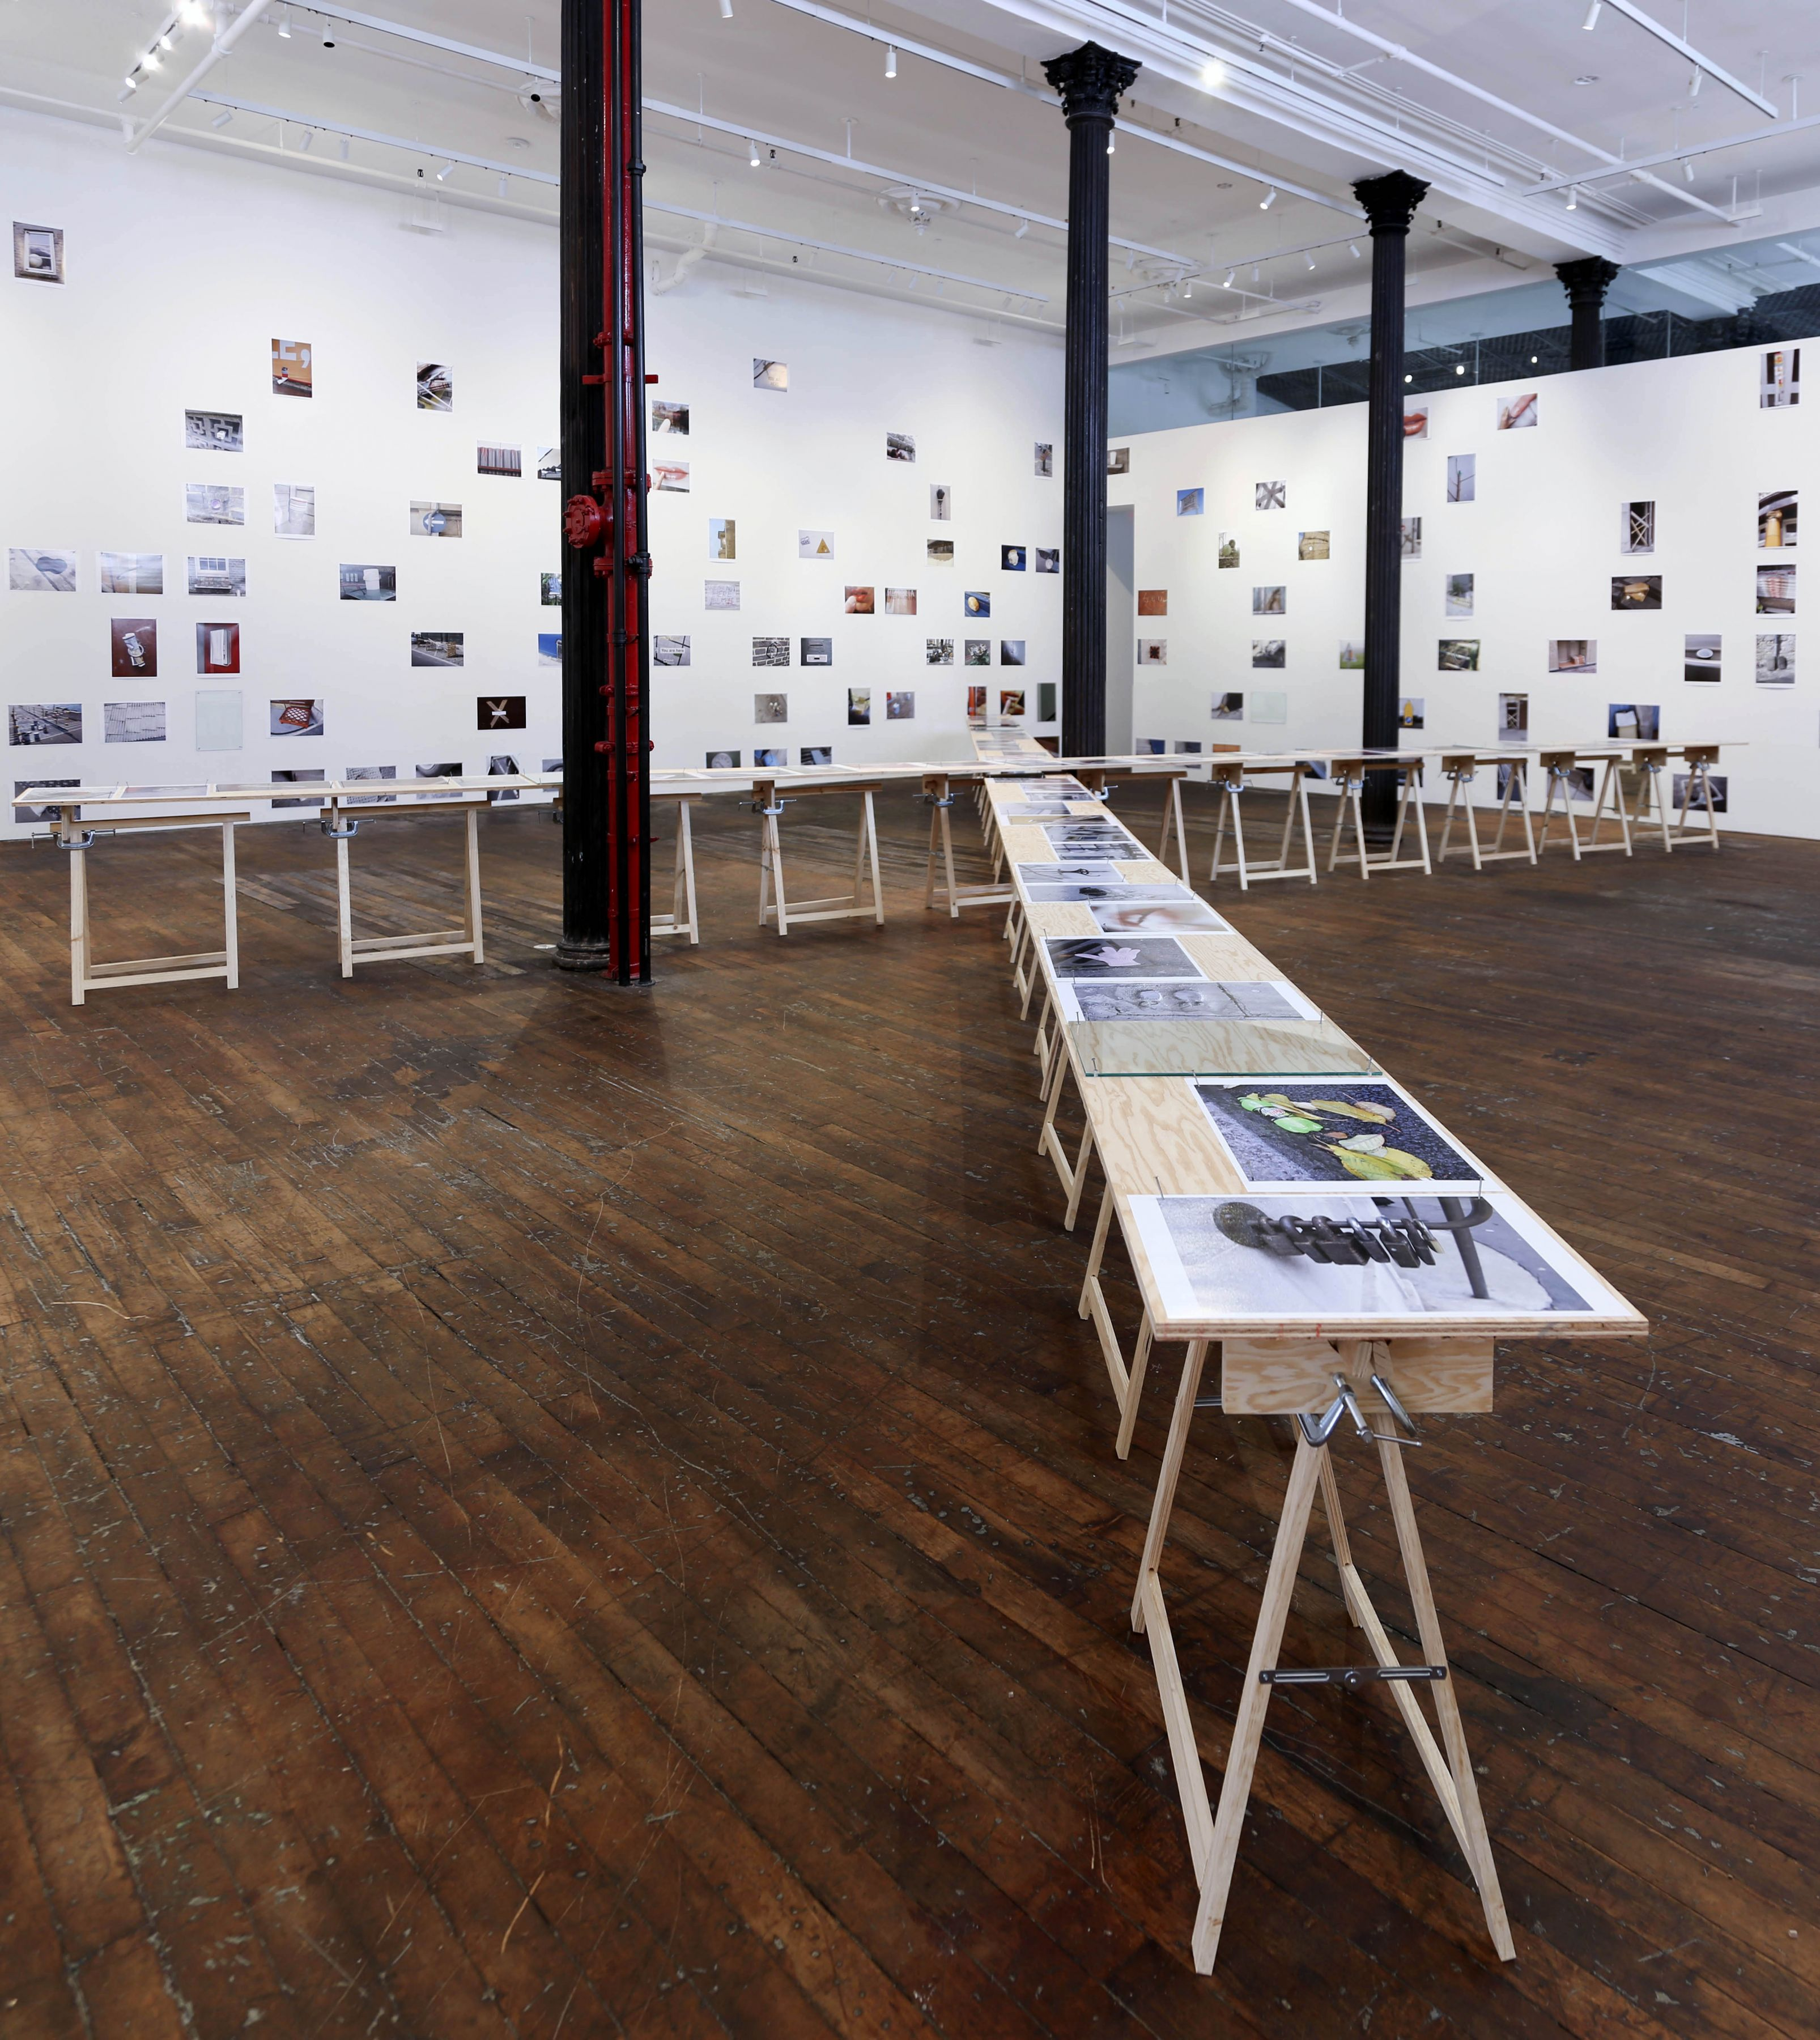 Richard Wentworth: motes to self – installation view 2